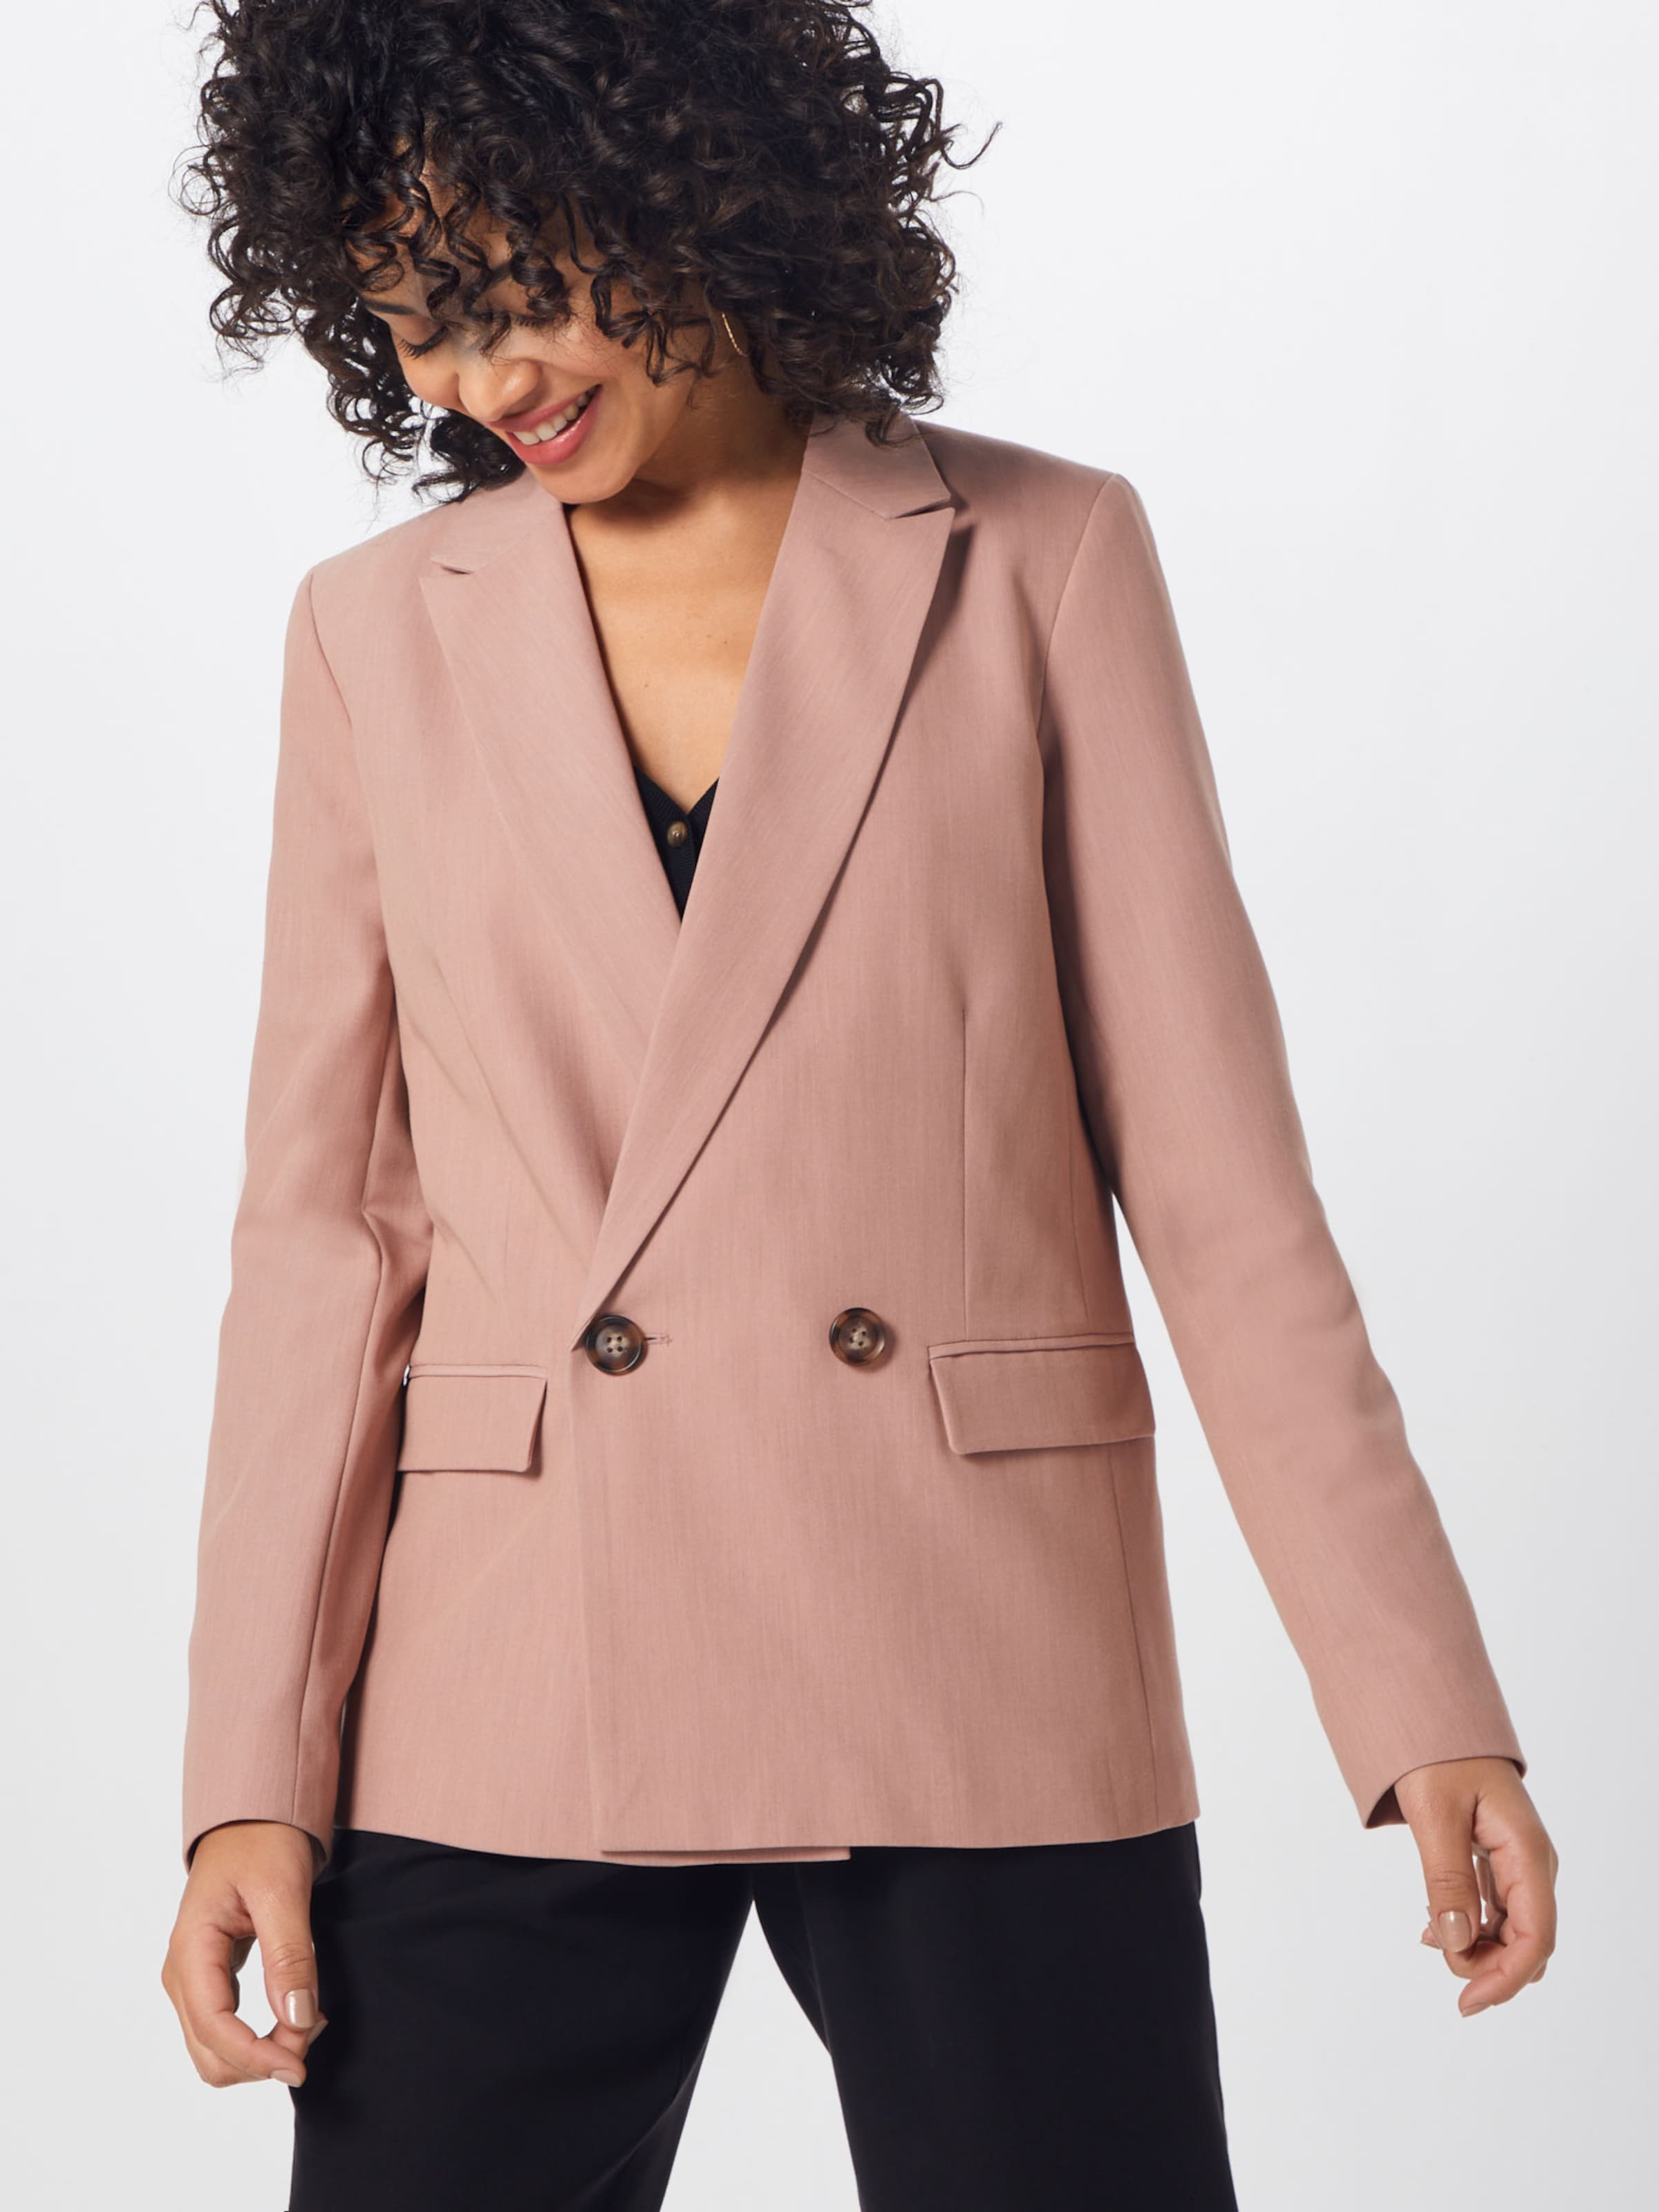 Blazers In Blazers Pieces Oudroze Pieces Pieces Oudroze Pieces In In Blazers Oudroze Blazers FK3lcT1J